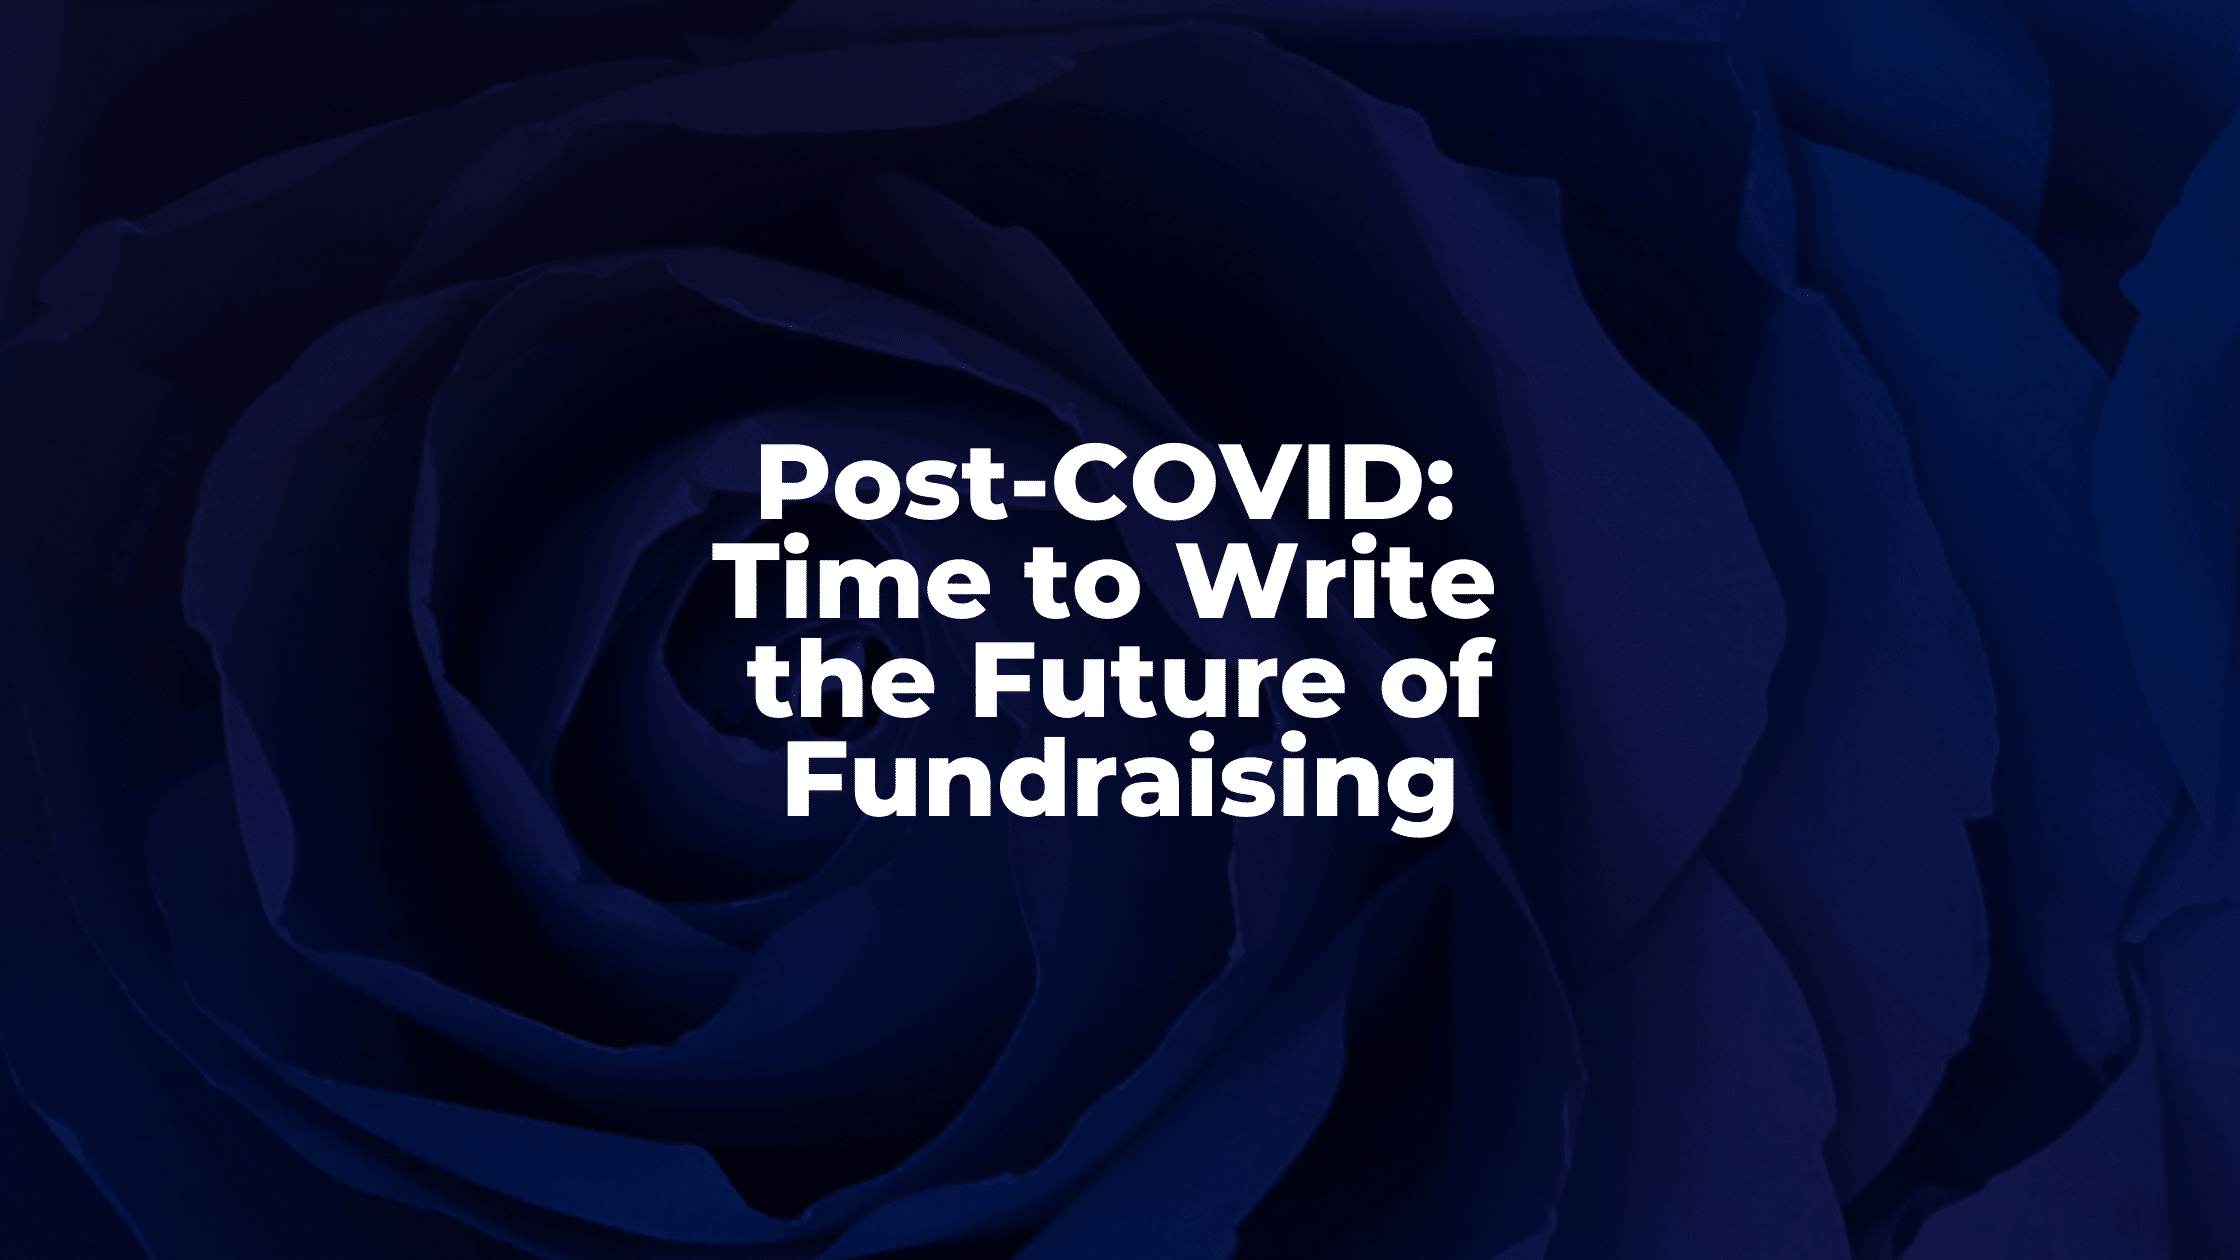 Post-COVID Time to Write the Future of Fundraising